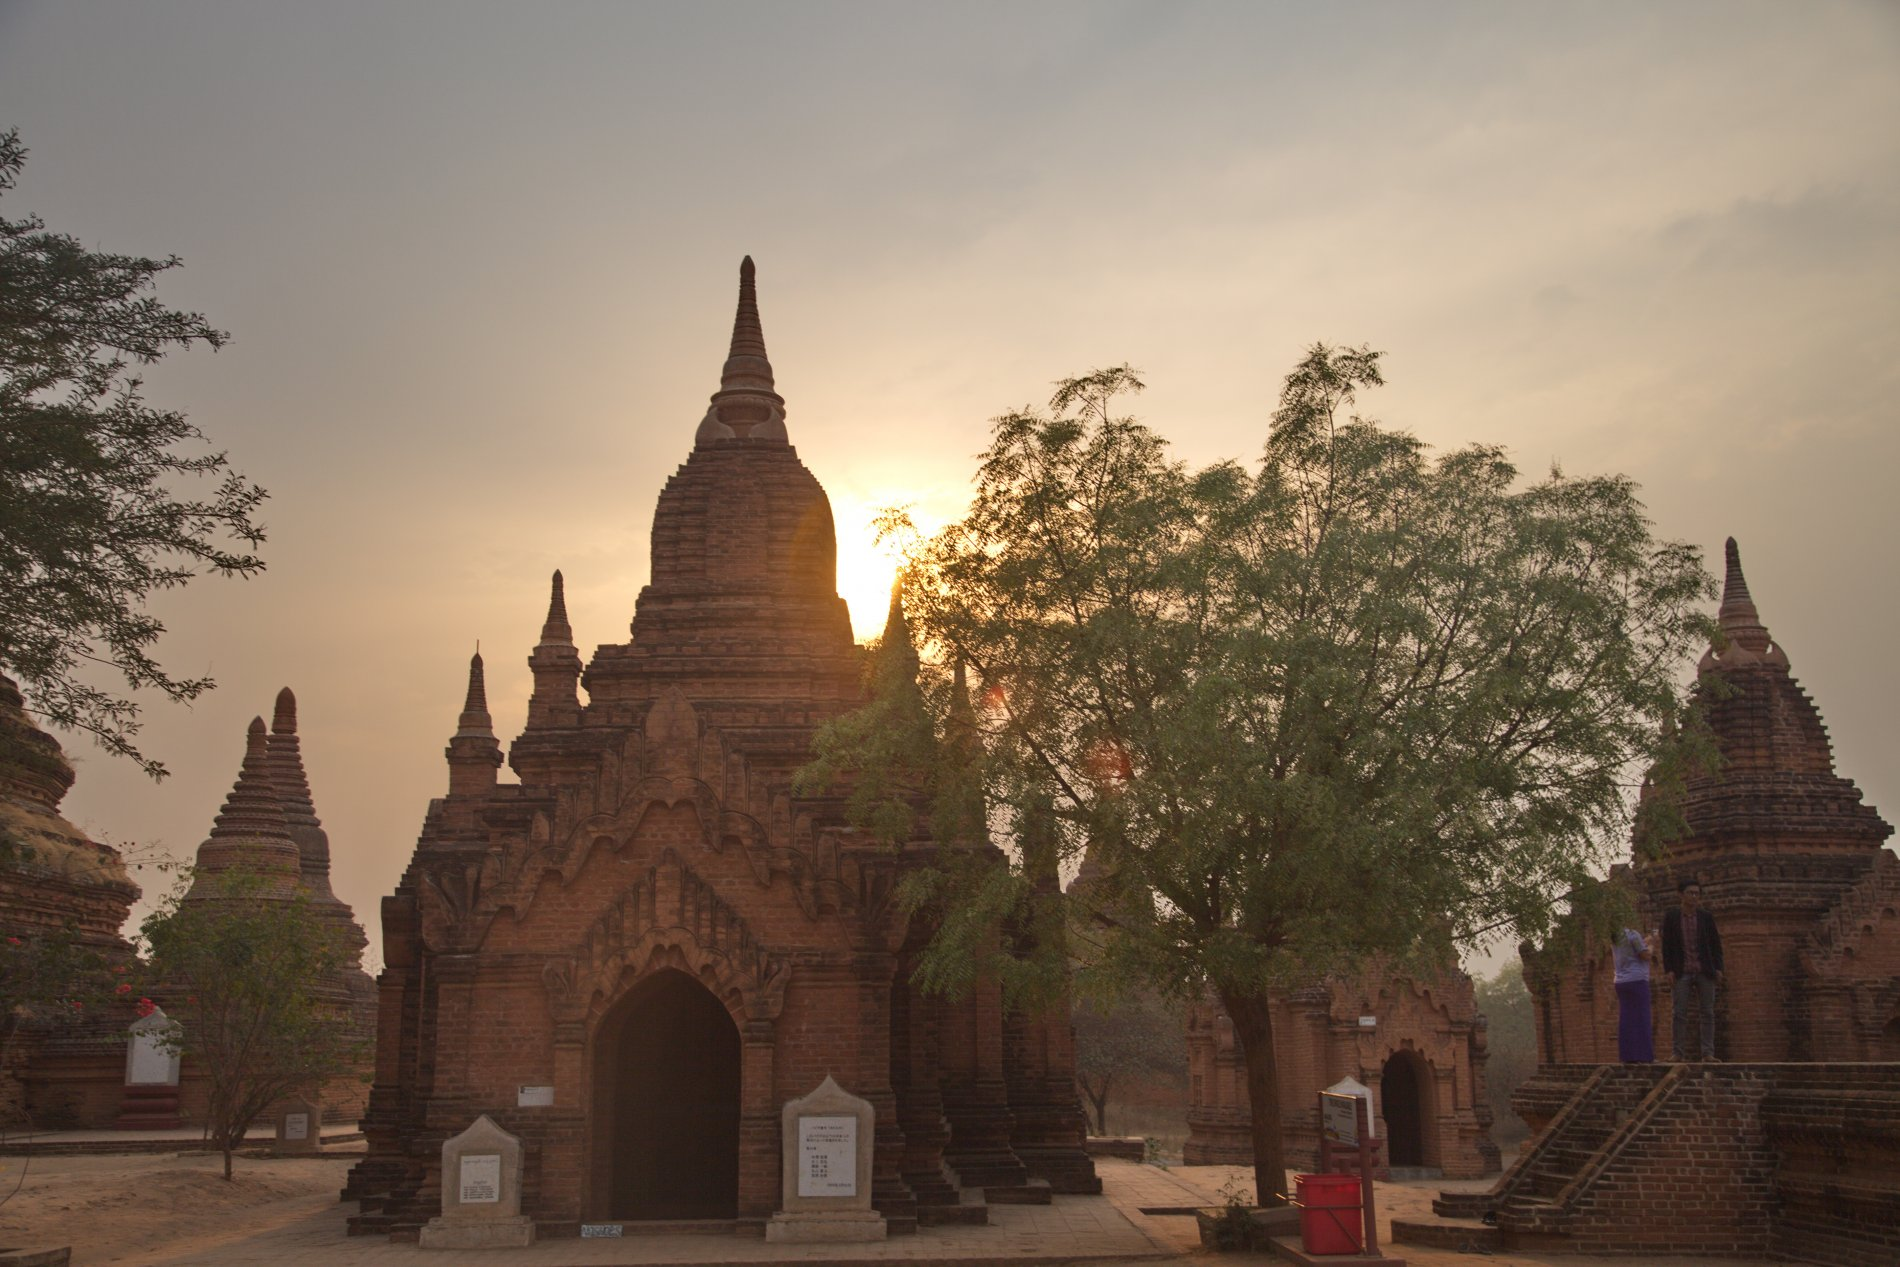 Bagan_164.jpg-commment